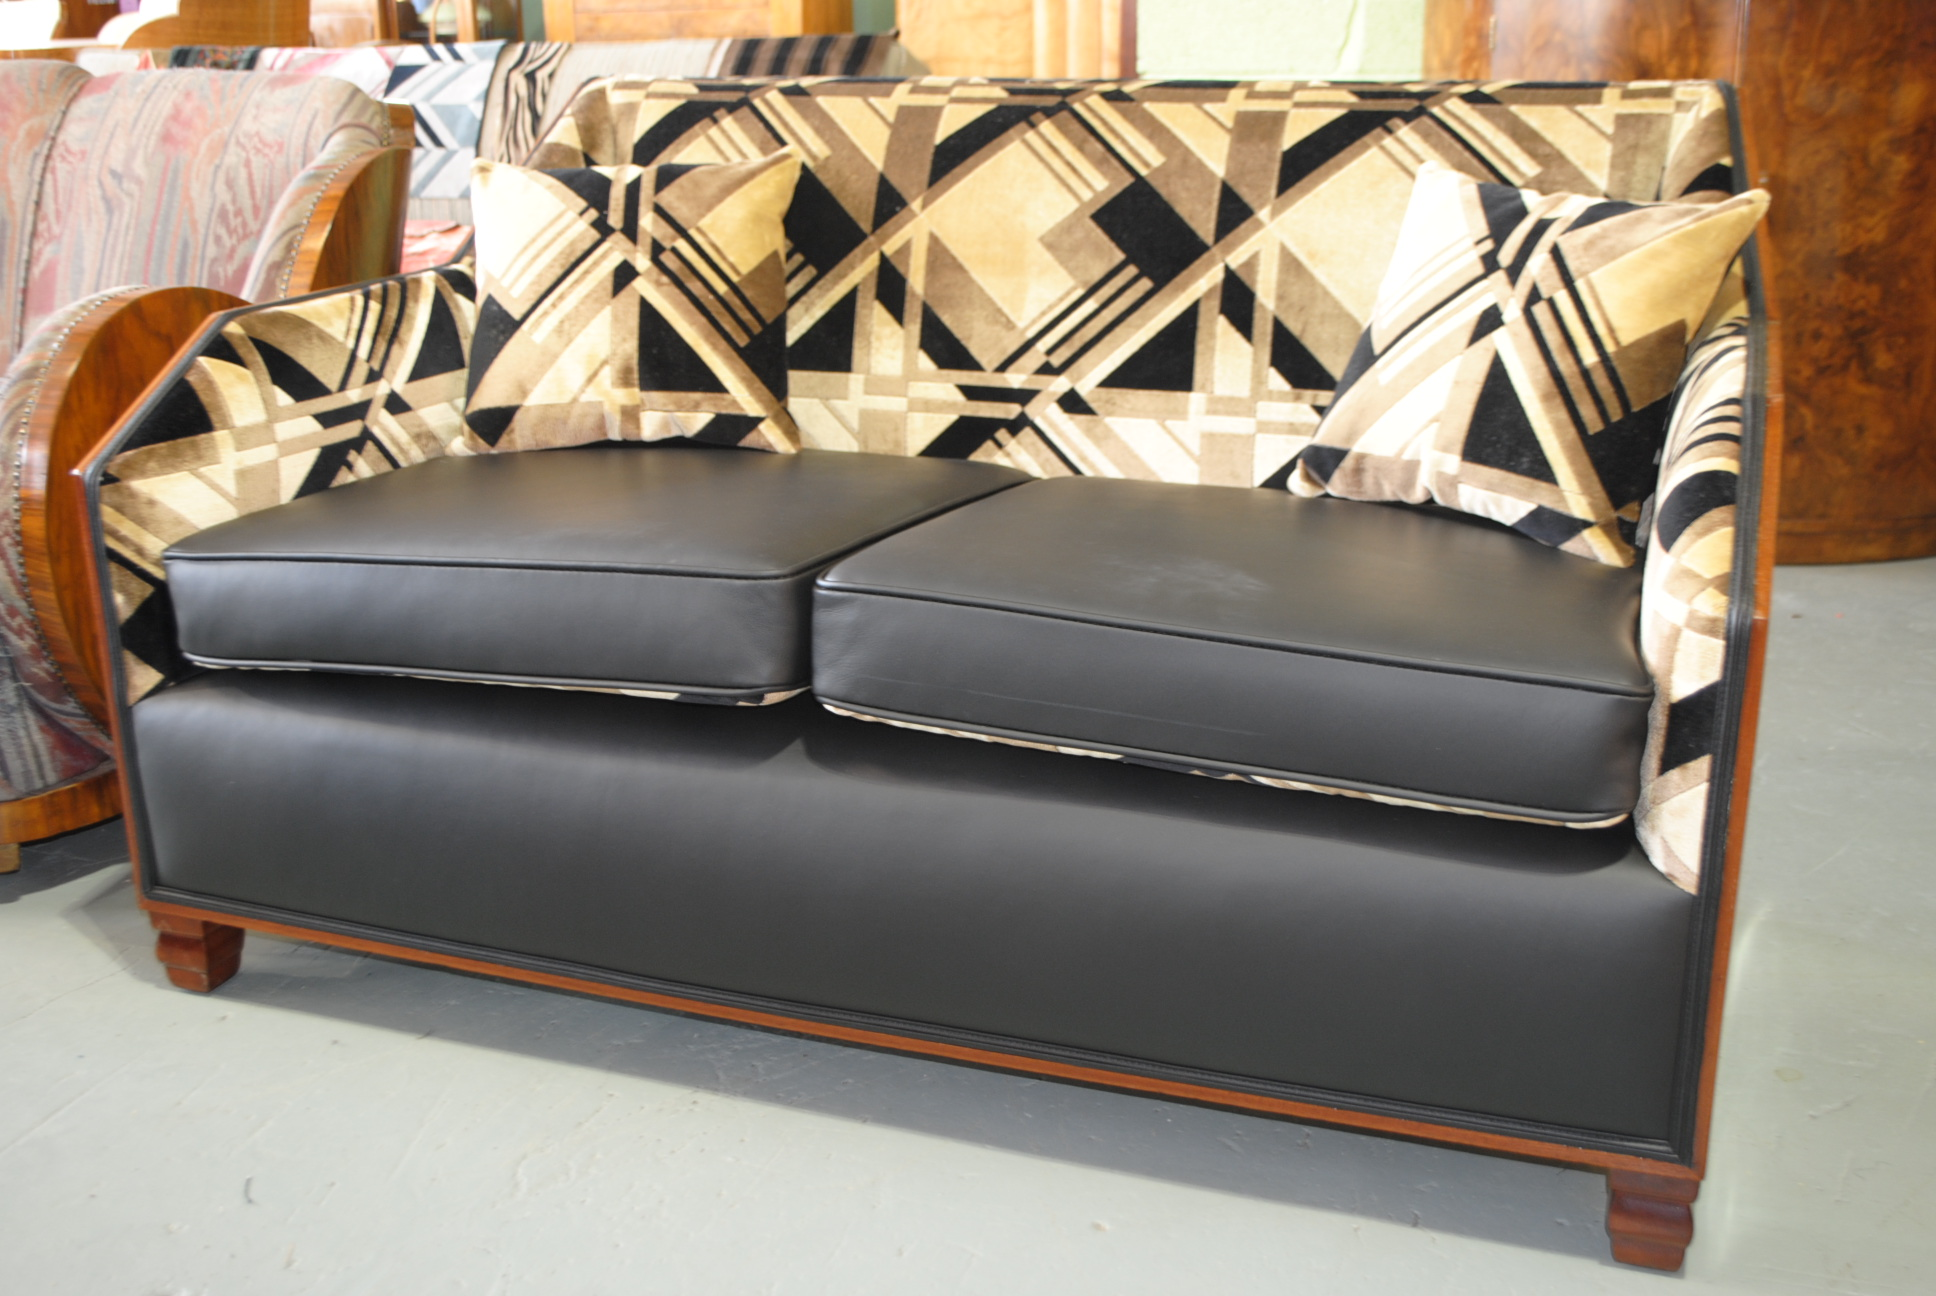 art deco sofa cloud 9 art deco furniture sales. Black Bedroom Furniture Sets. Home Design Ideas